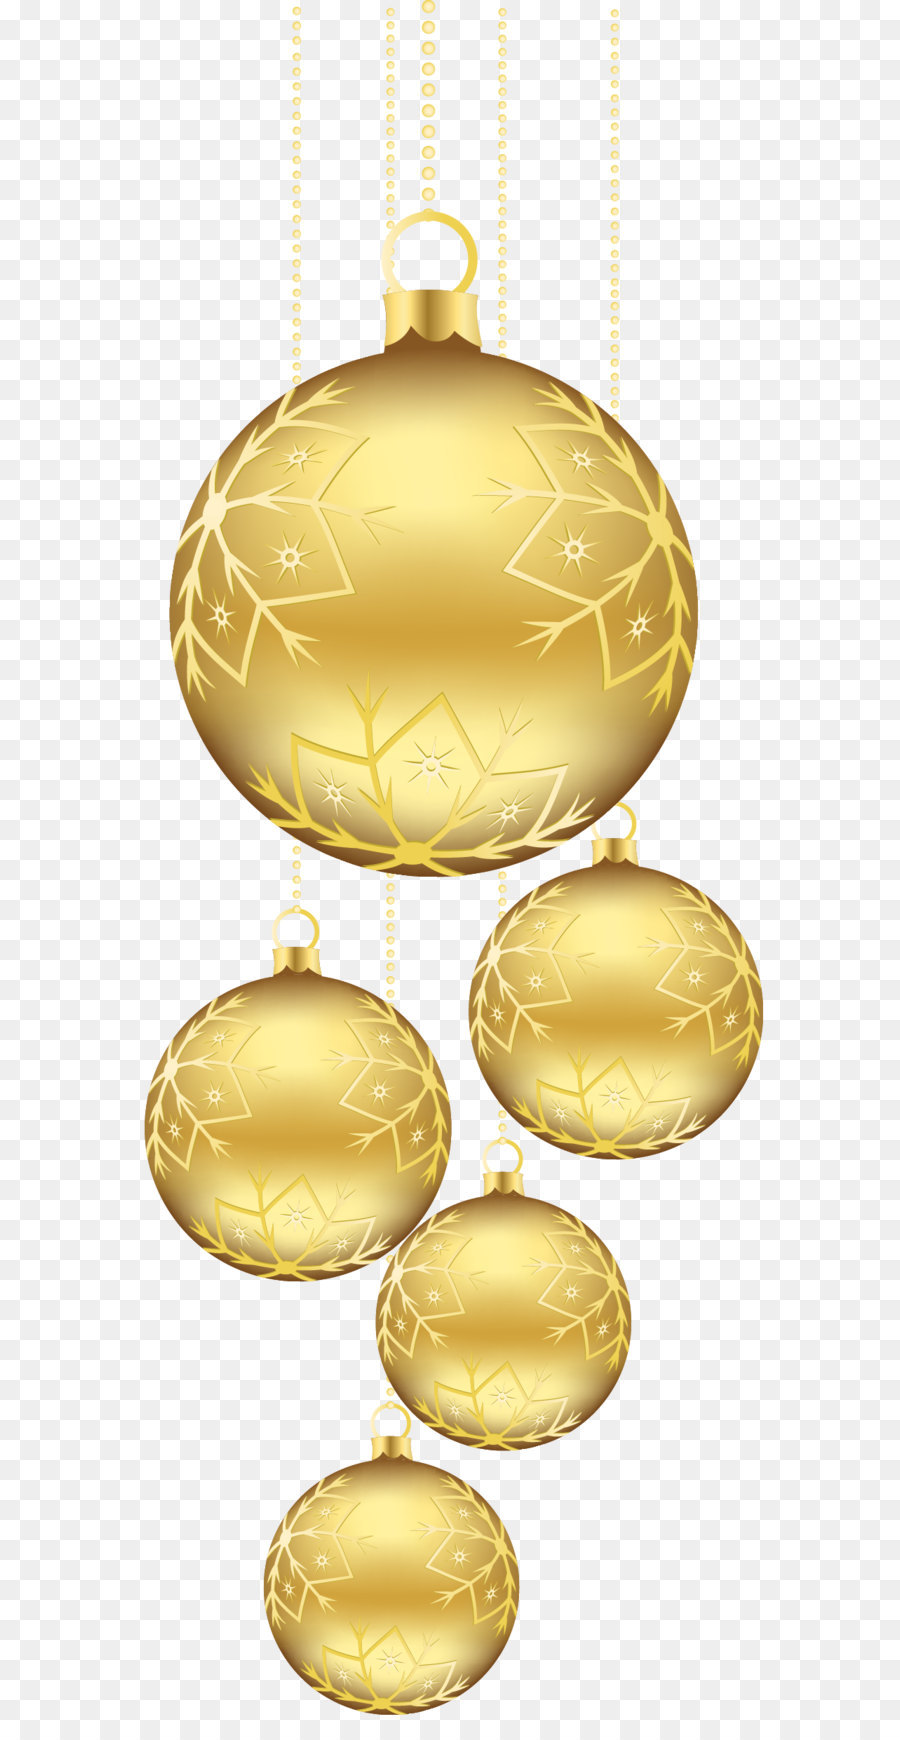 Gold Christmas Ornaments Png Amp Free Gold Christmas